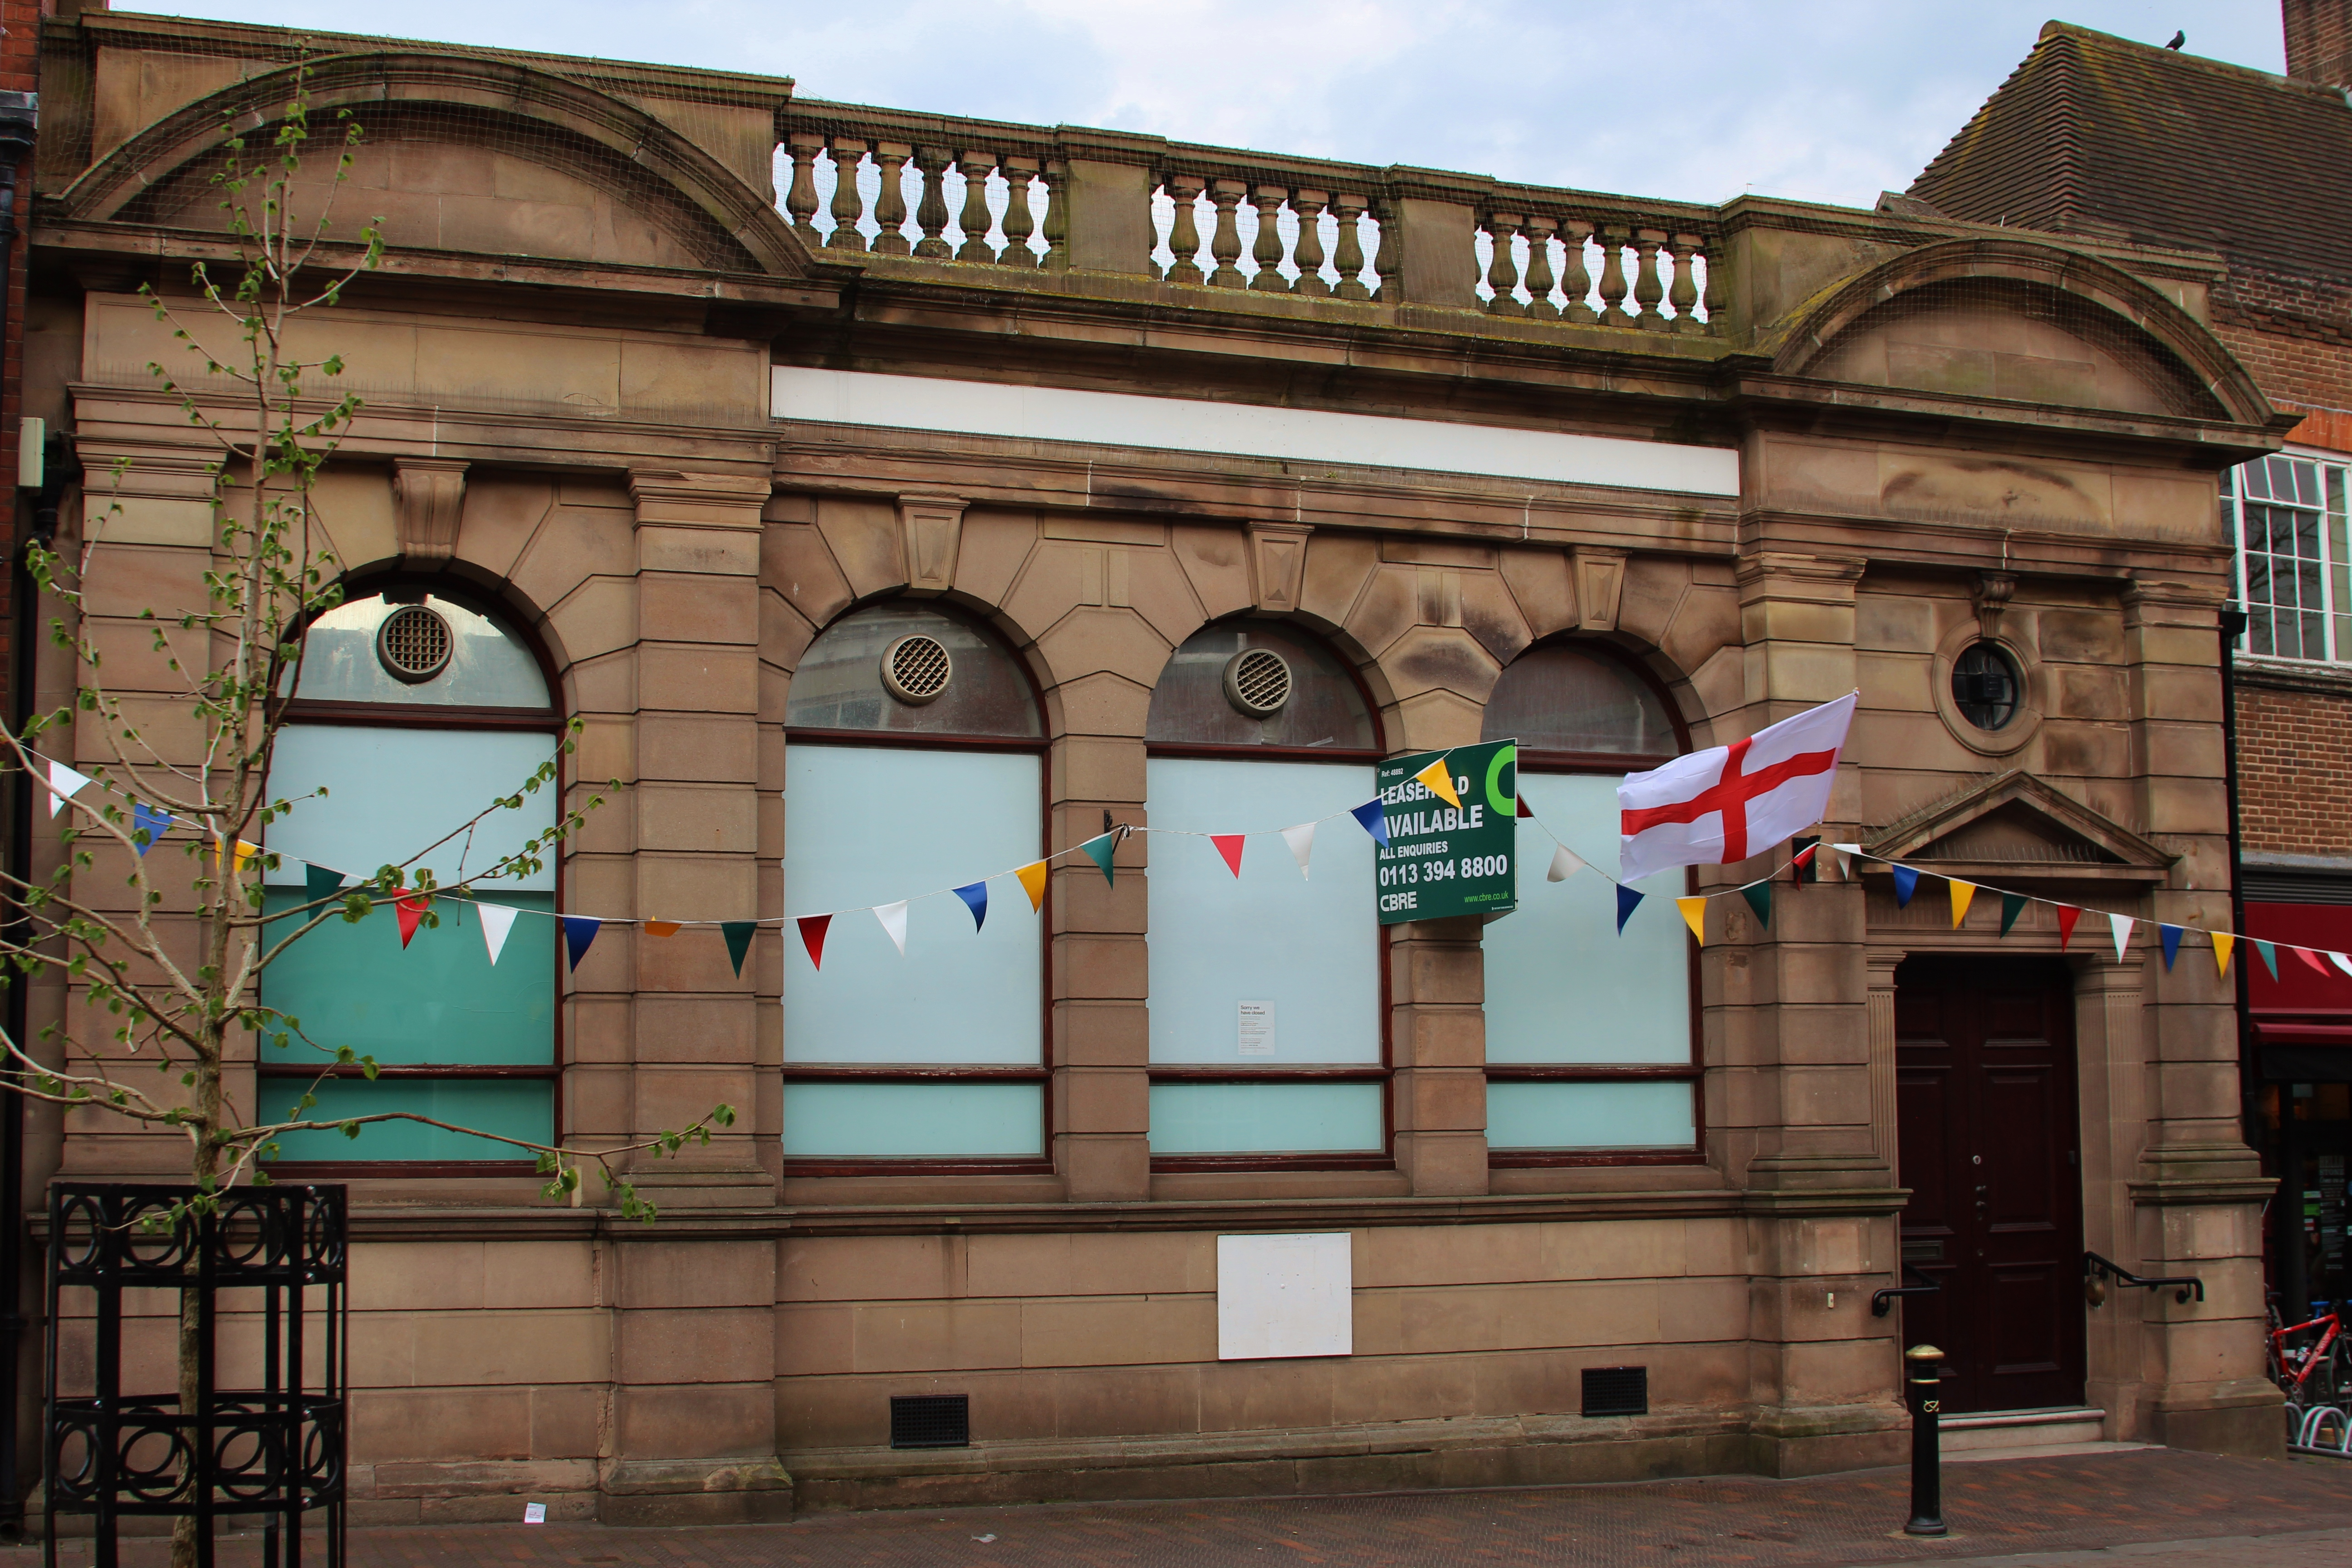 BEAR plans to move into Stone's former HSBC bank > A Little Bit of Stone